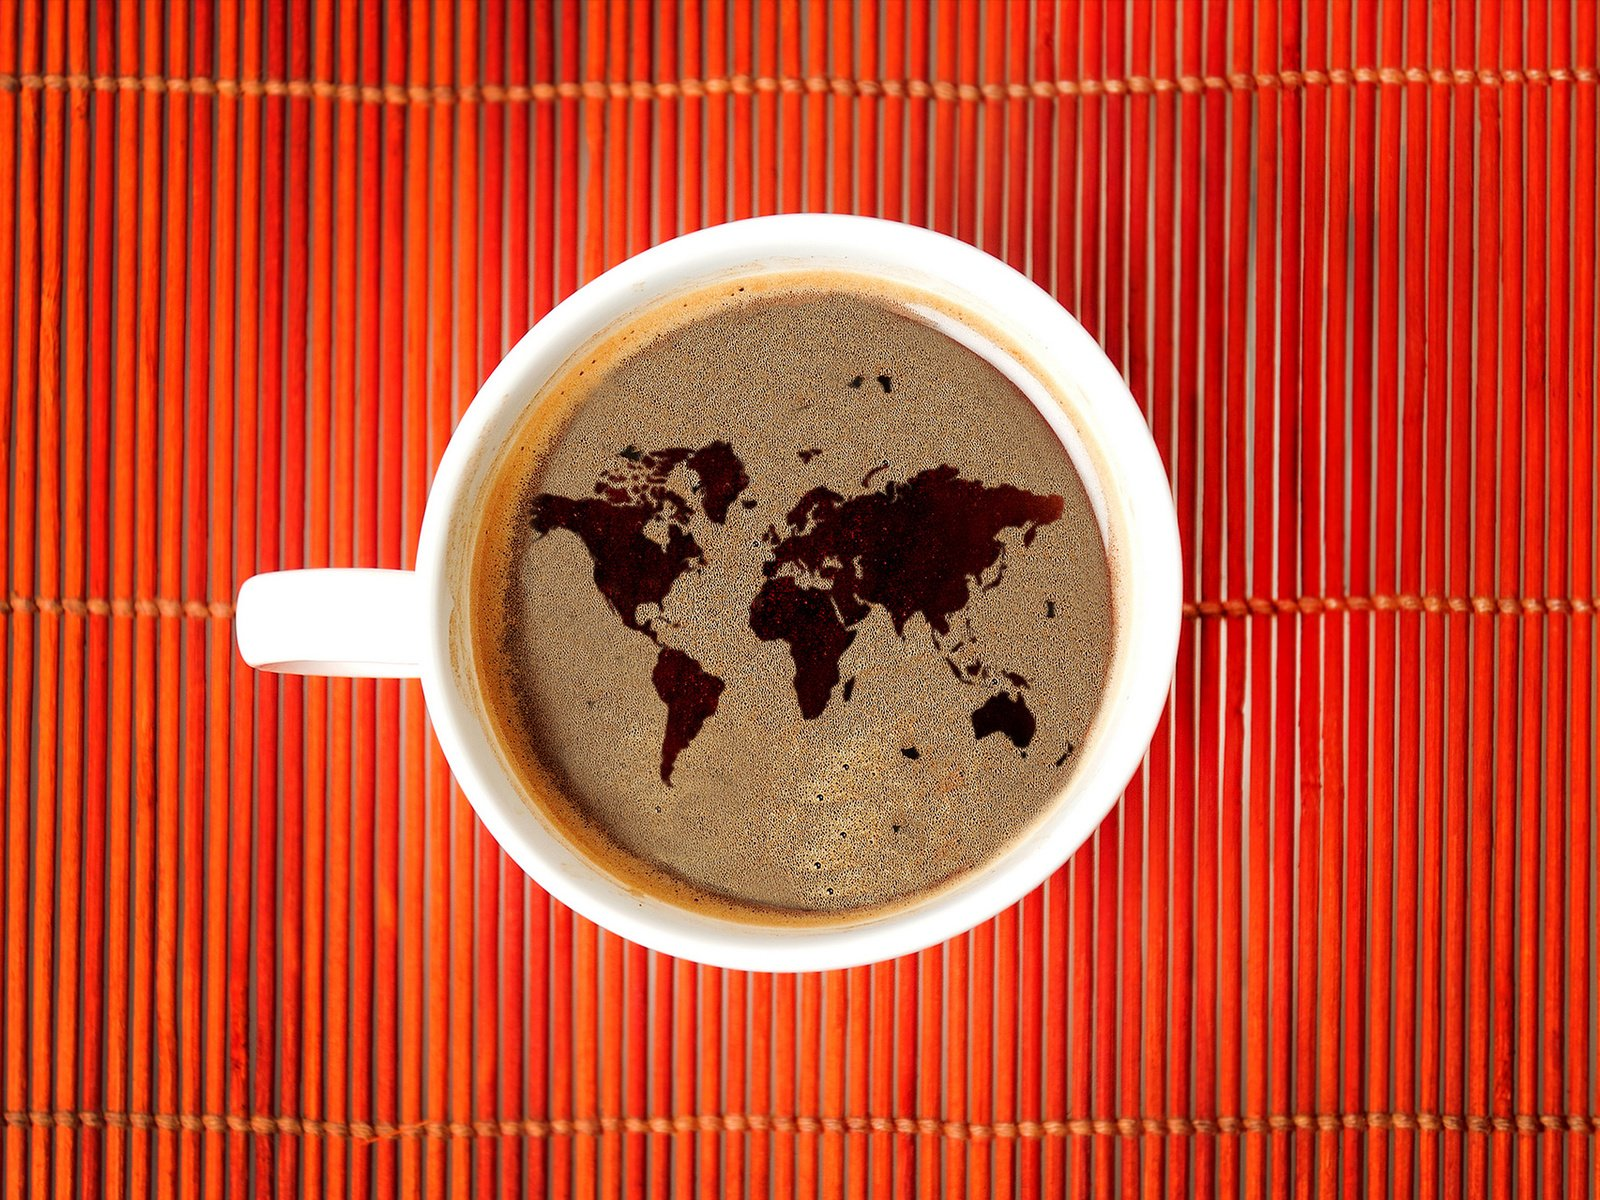 coffee in world history It takes a lot of work to produce the best coffee in the world these are the 10 countries that dominate the scene.